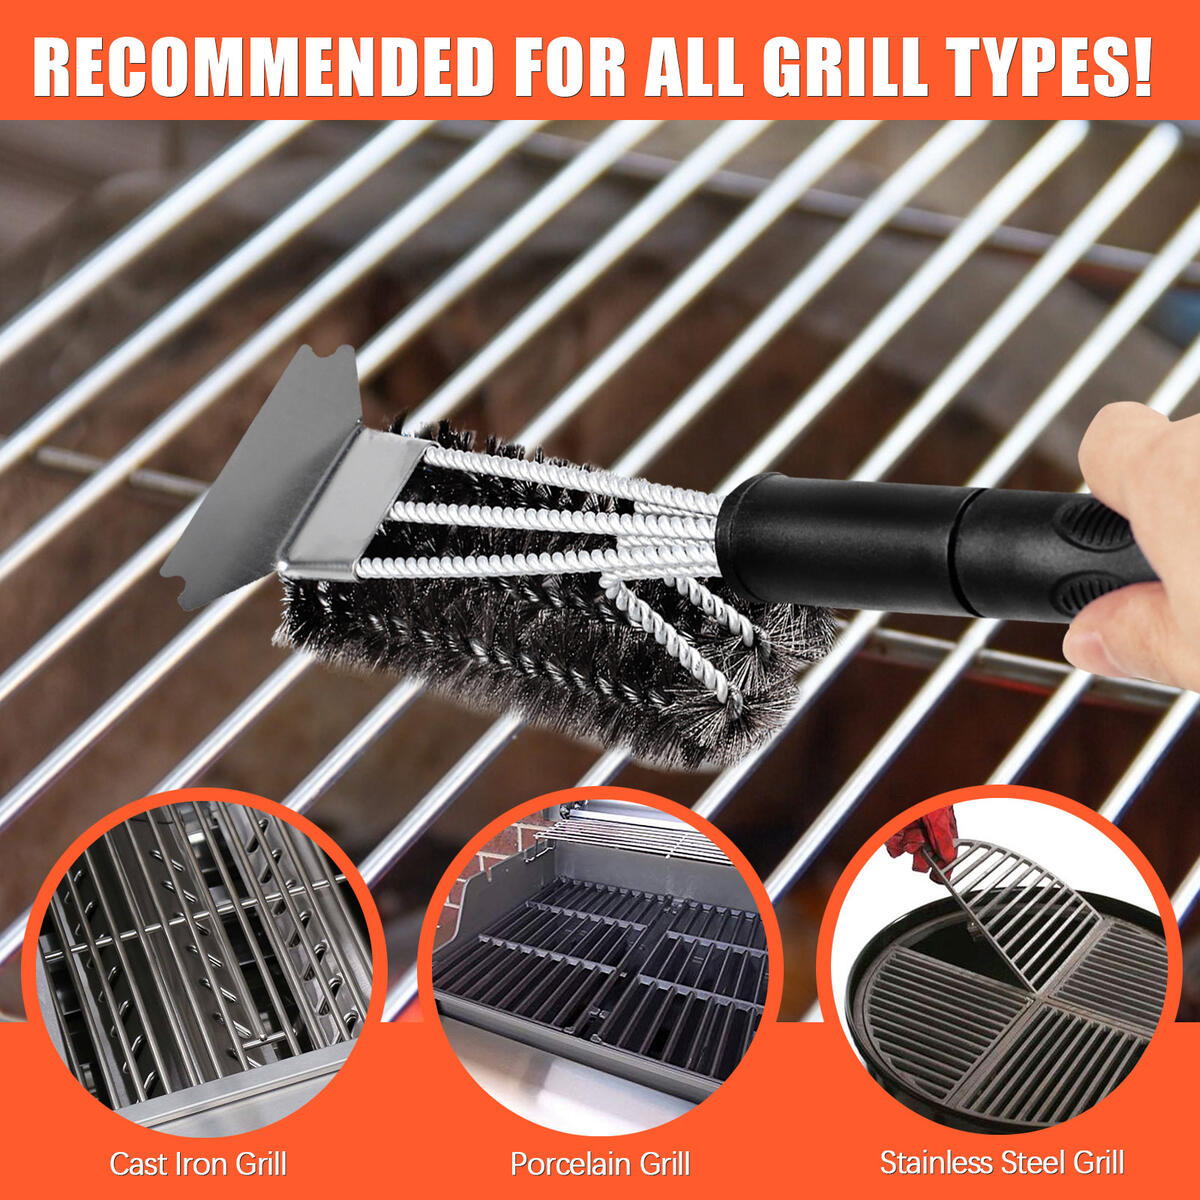 Royor Grill Brush and Scraper Bristle Free, Stainless Steel Bristles Grill Cleaner, Grill Cleaning Brush for Gas Grill - Flex-Grip Handle, Ideal BBQ Grill Accessories(Black 19.5'')